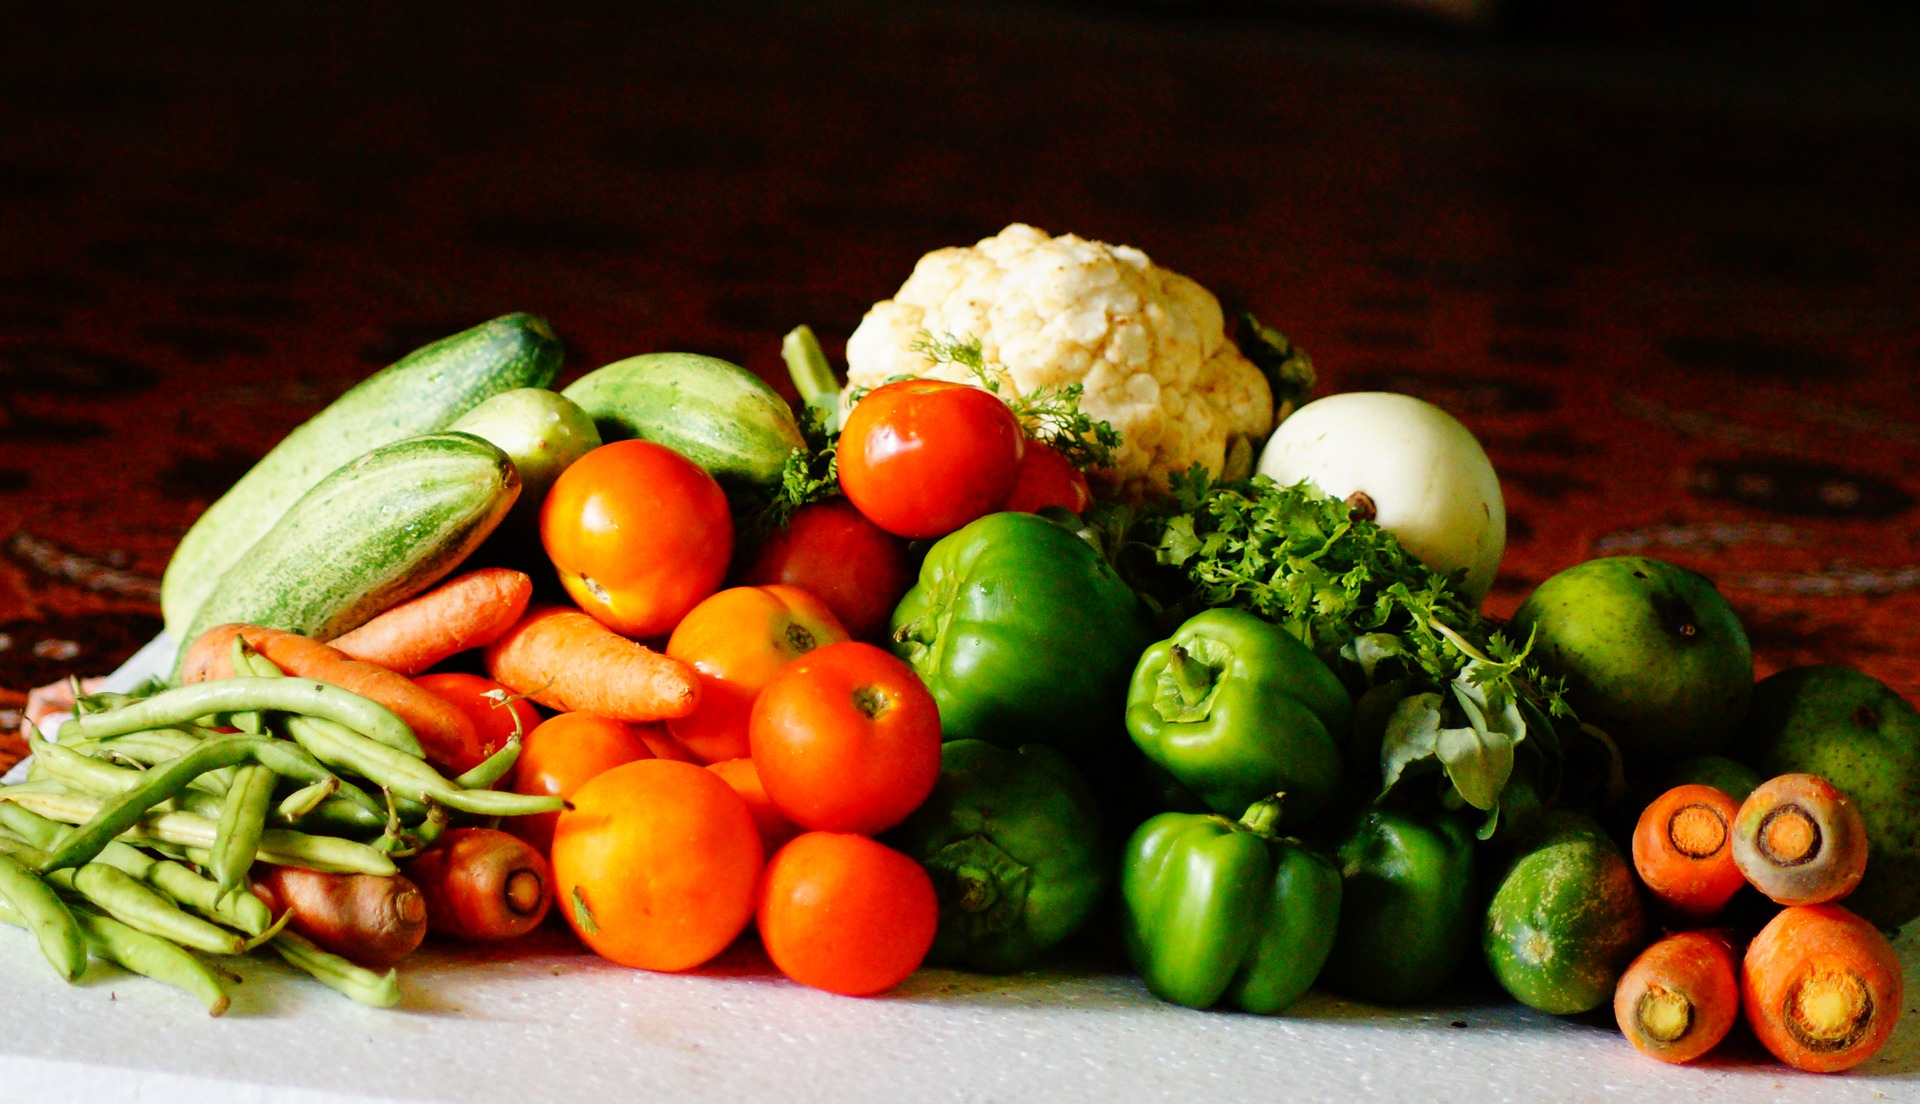 An array of different vegetables; tomatoes, peppers, cauliflower, carrots and string beans on a table. - TAB Bank